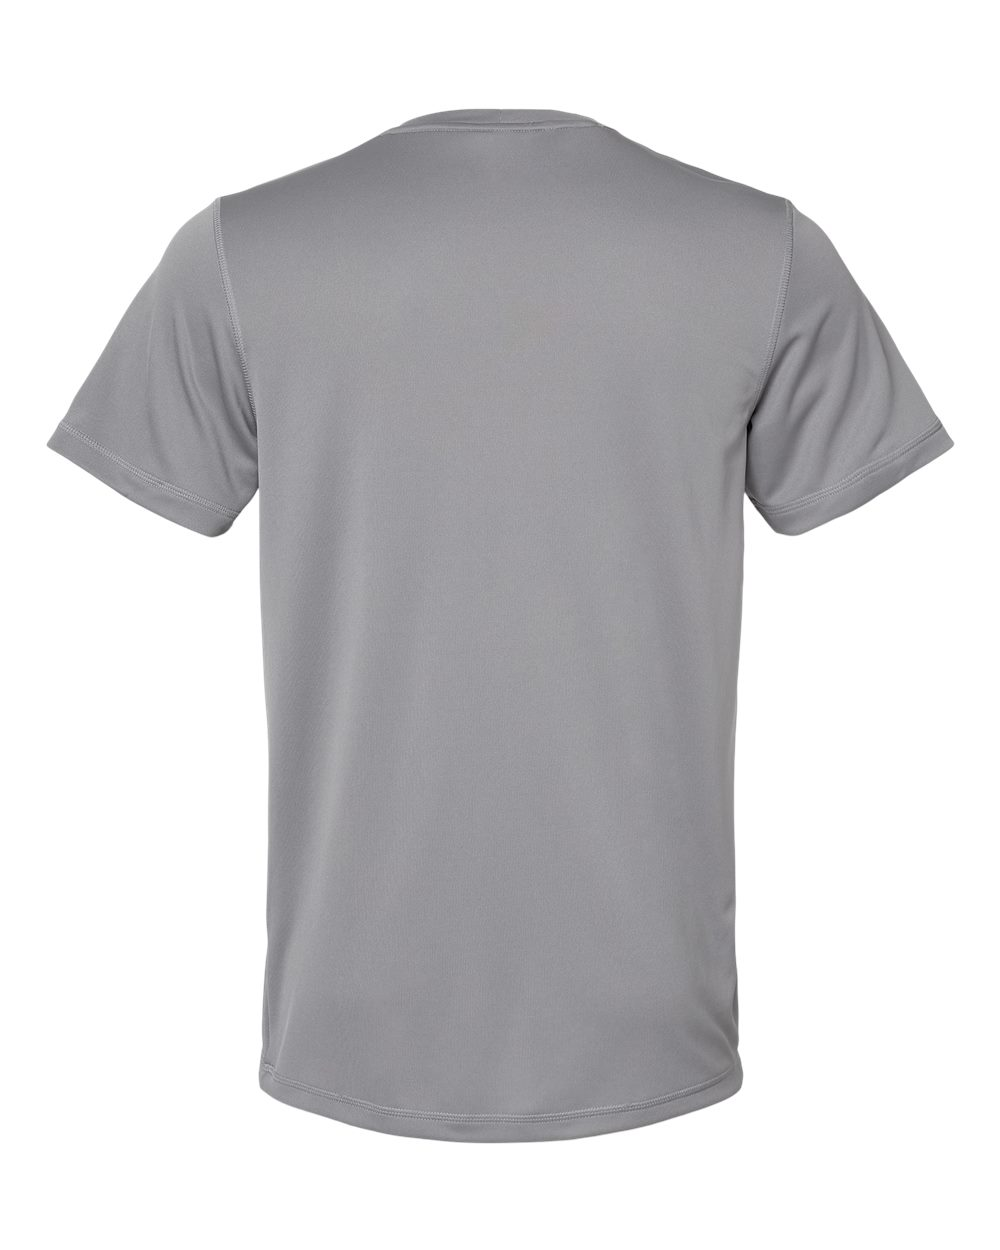 Adidas-Mens-Blank-Short-Sleeve-Polyester-Sport-T-Shirt-A376-up-to-4XL miniature 25